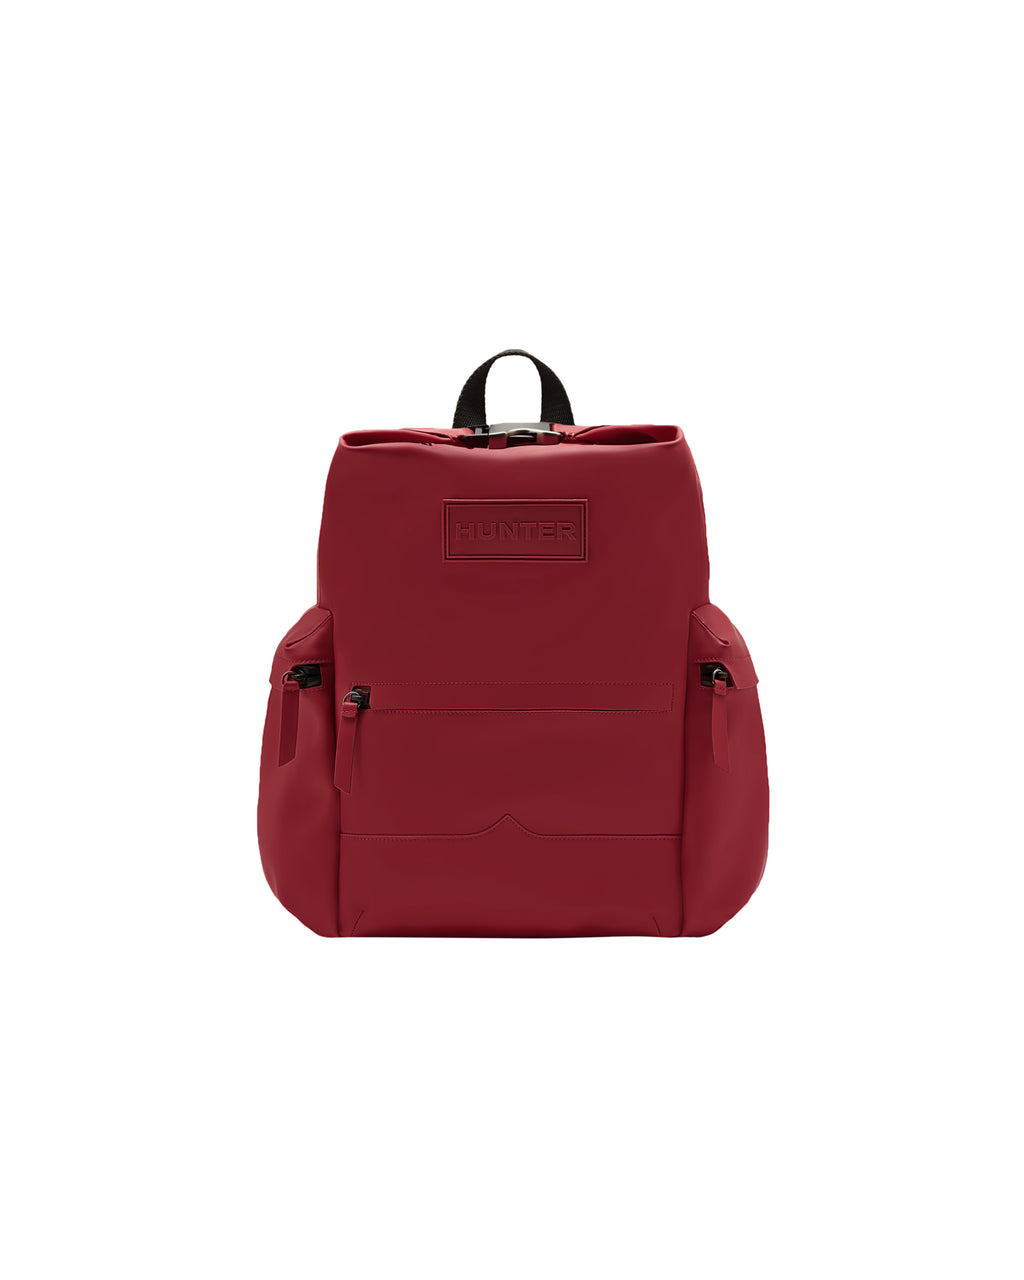 Original Top Buckle Leather Backpack